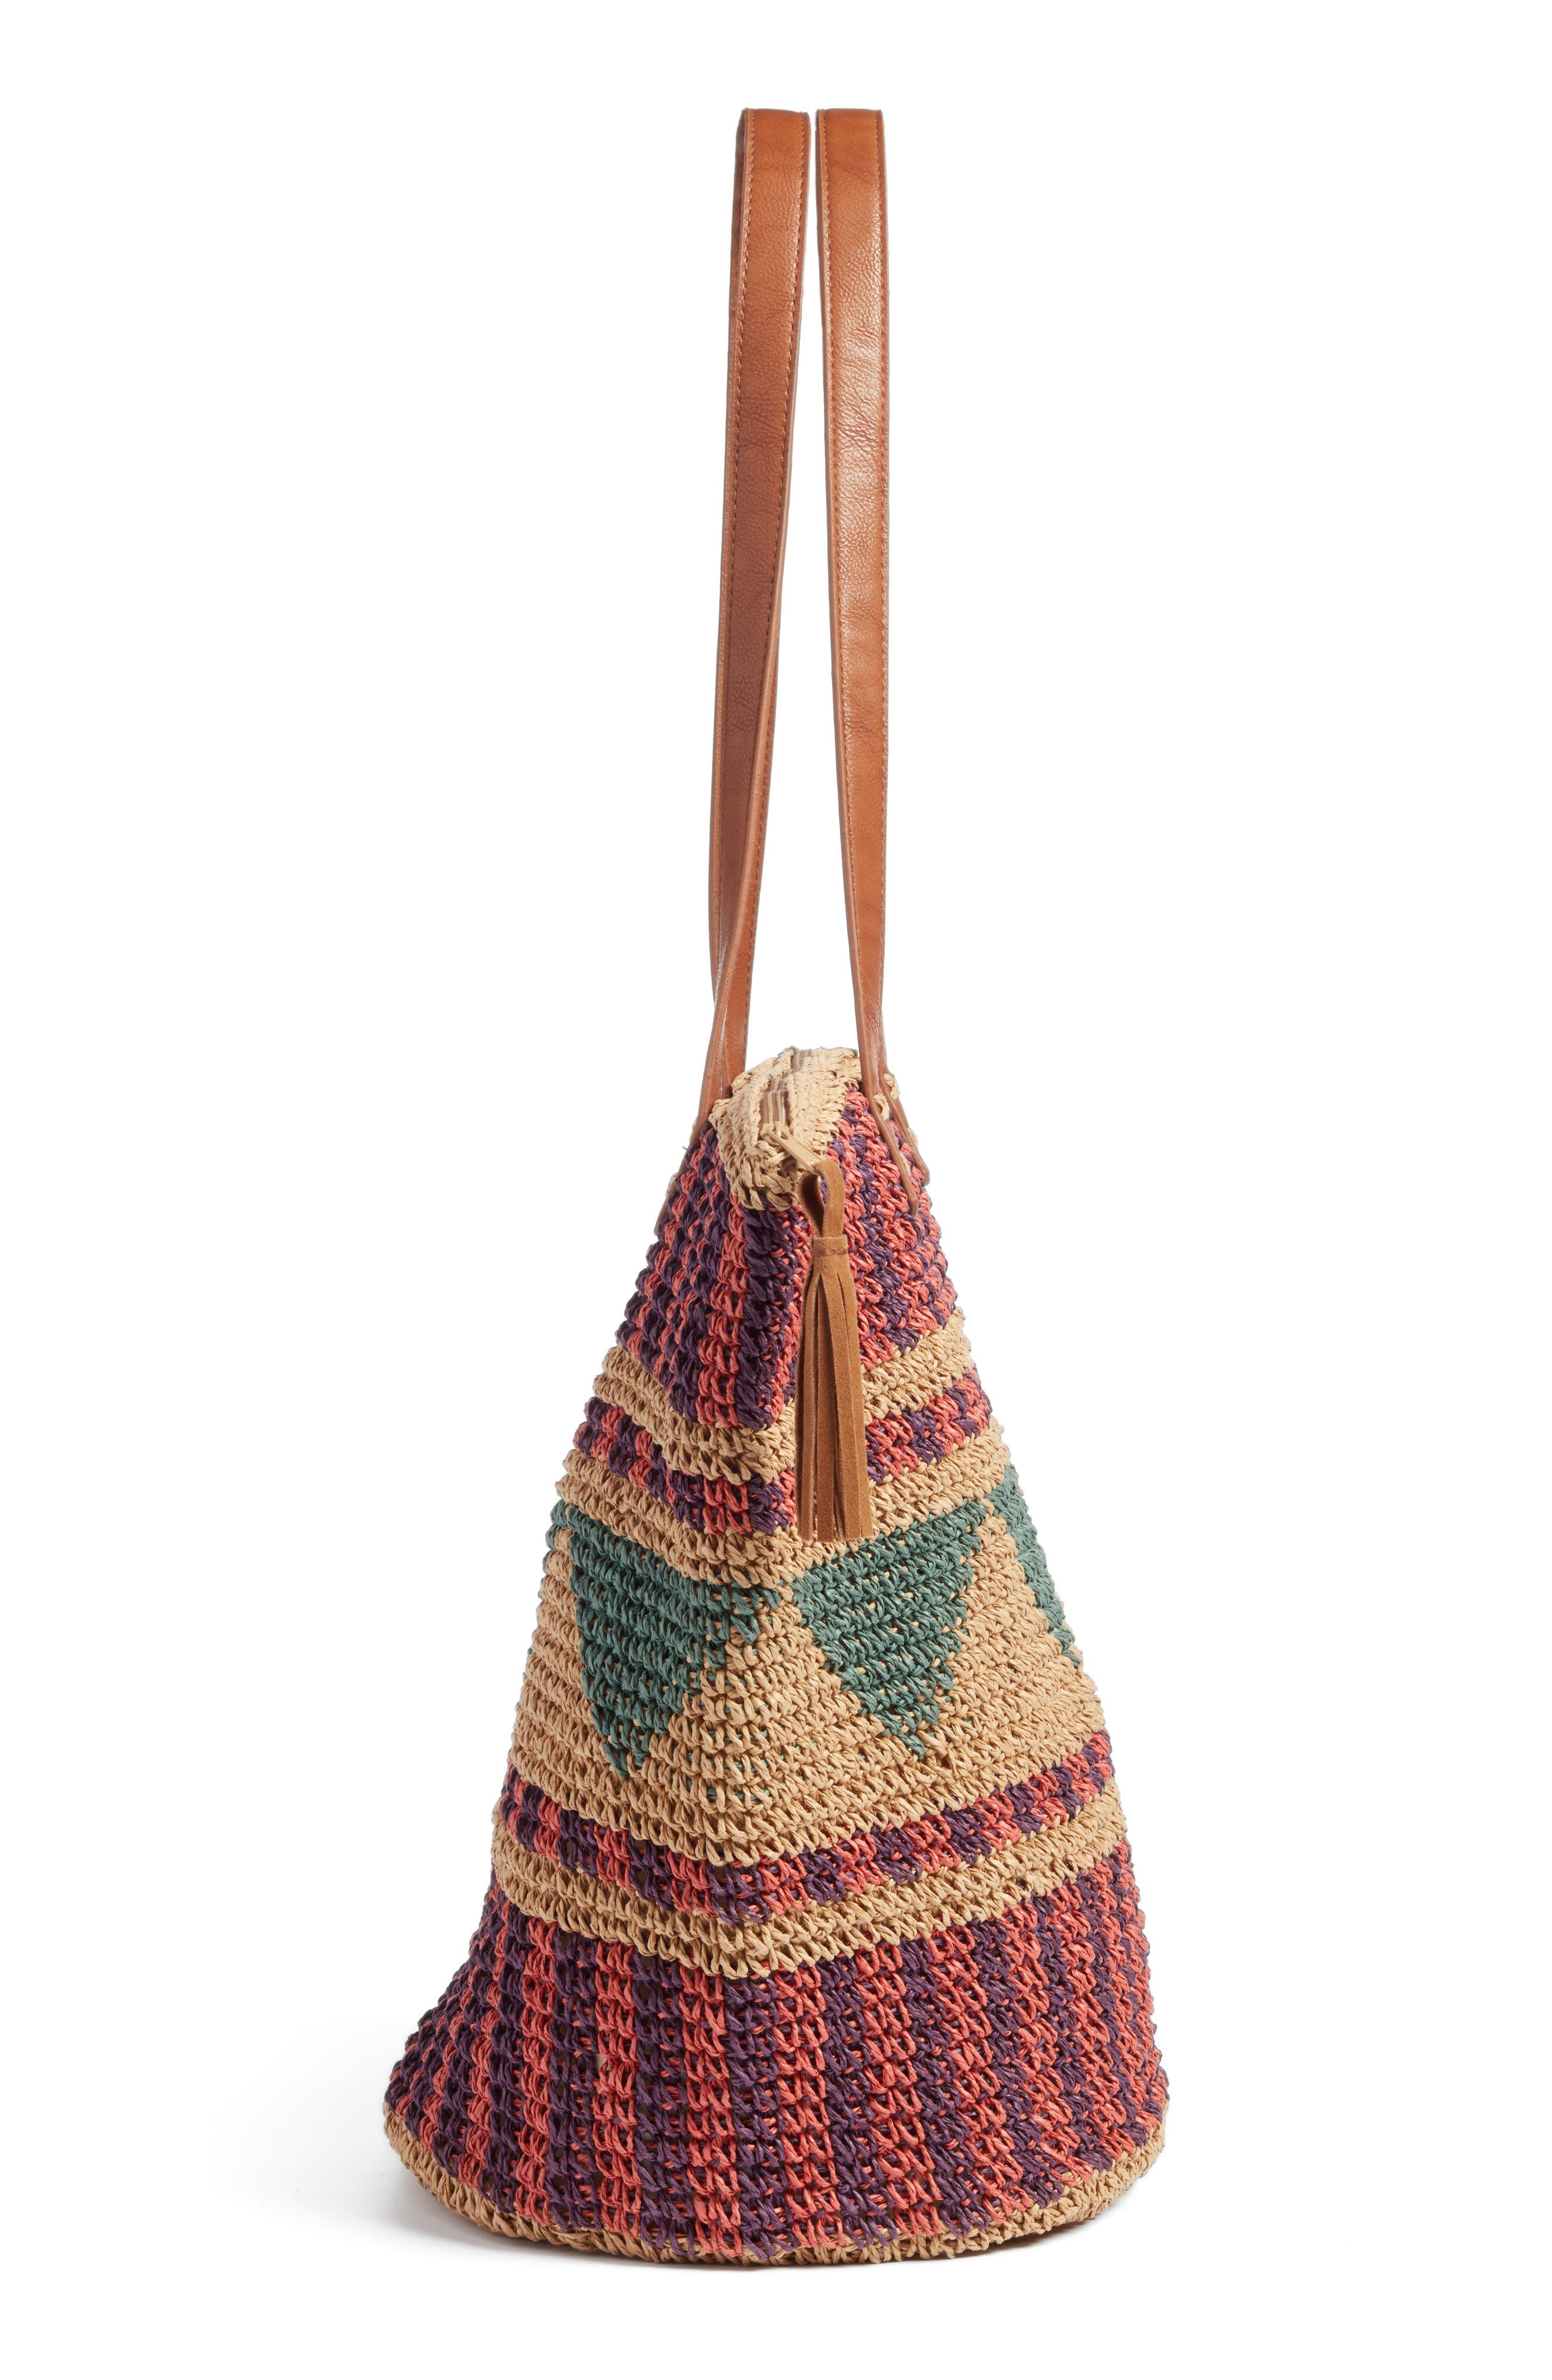 East of Dover Print Straw Tote,                             Alternate thumbnail 5, color,                             Rosewater